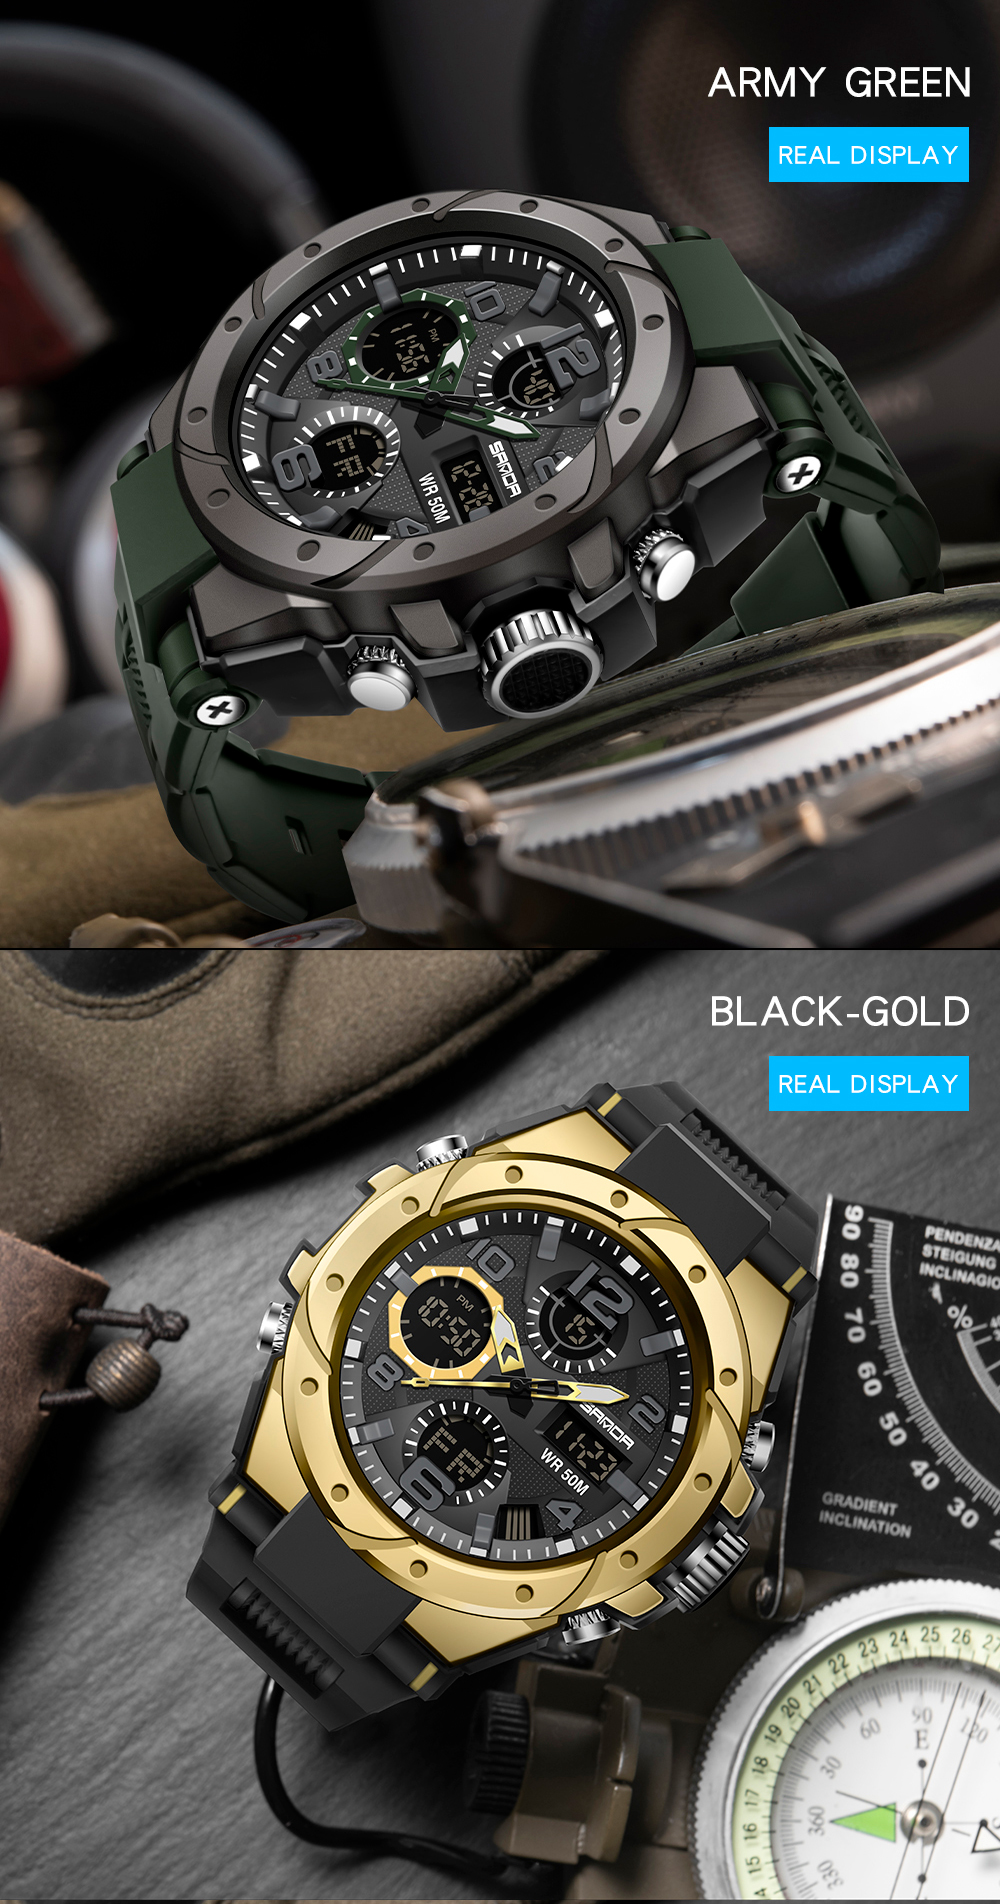 H0c08e6ad28e34c6cbd01f6dab01efd765 SANAD Top Brand Luxury Men's Military Sports Watches 5ATM Waterproof